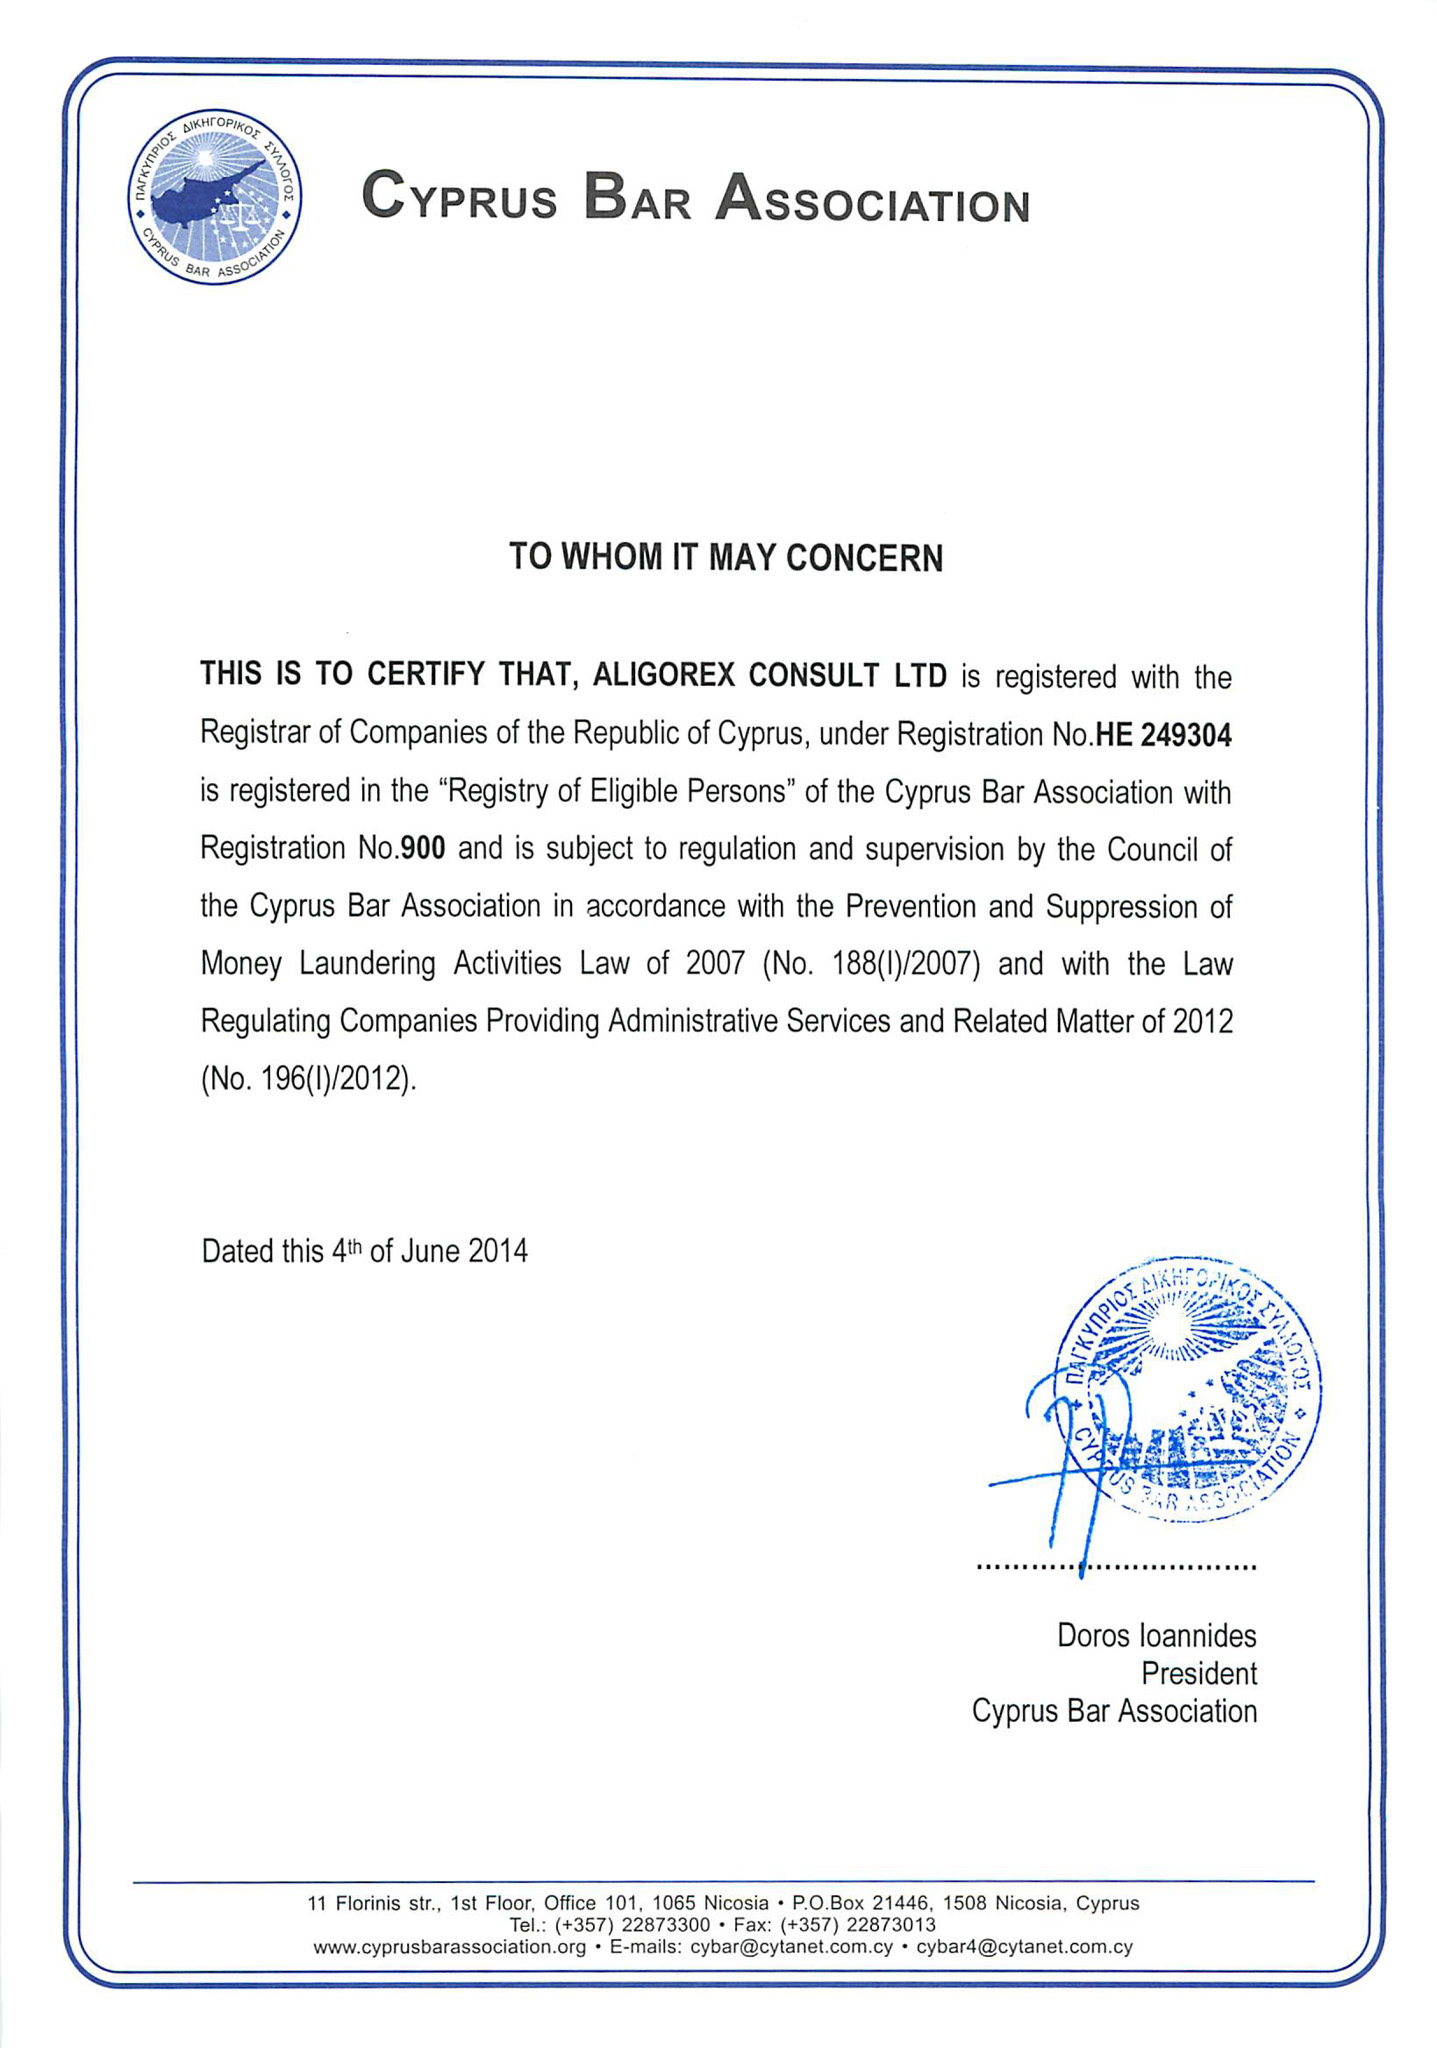 License Aligorex Consult signed by president of Cyprus Bar Association